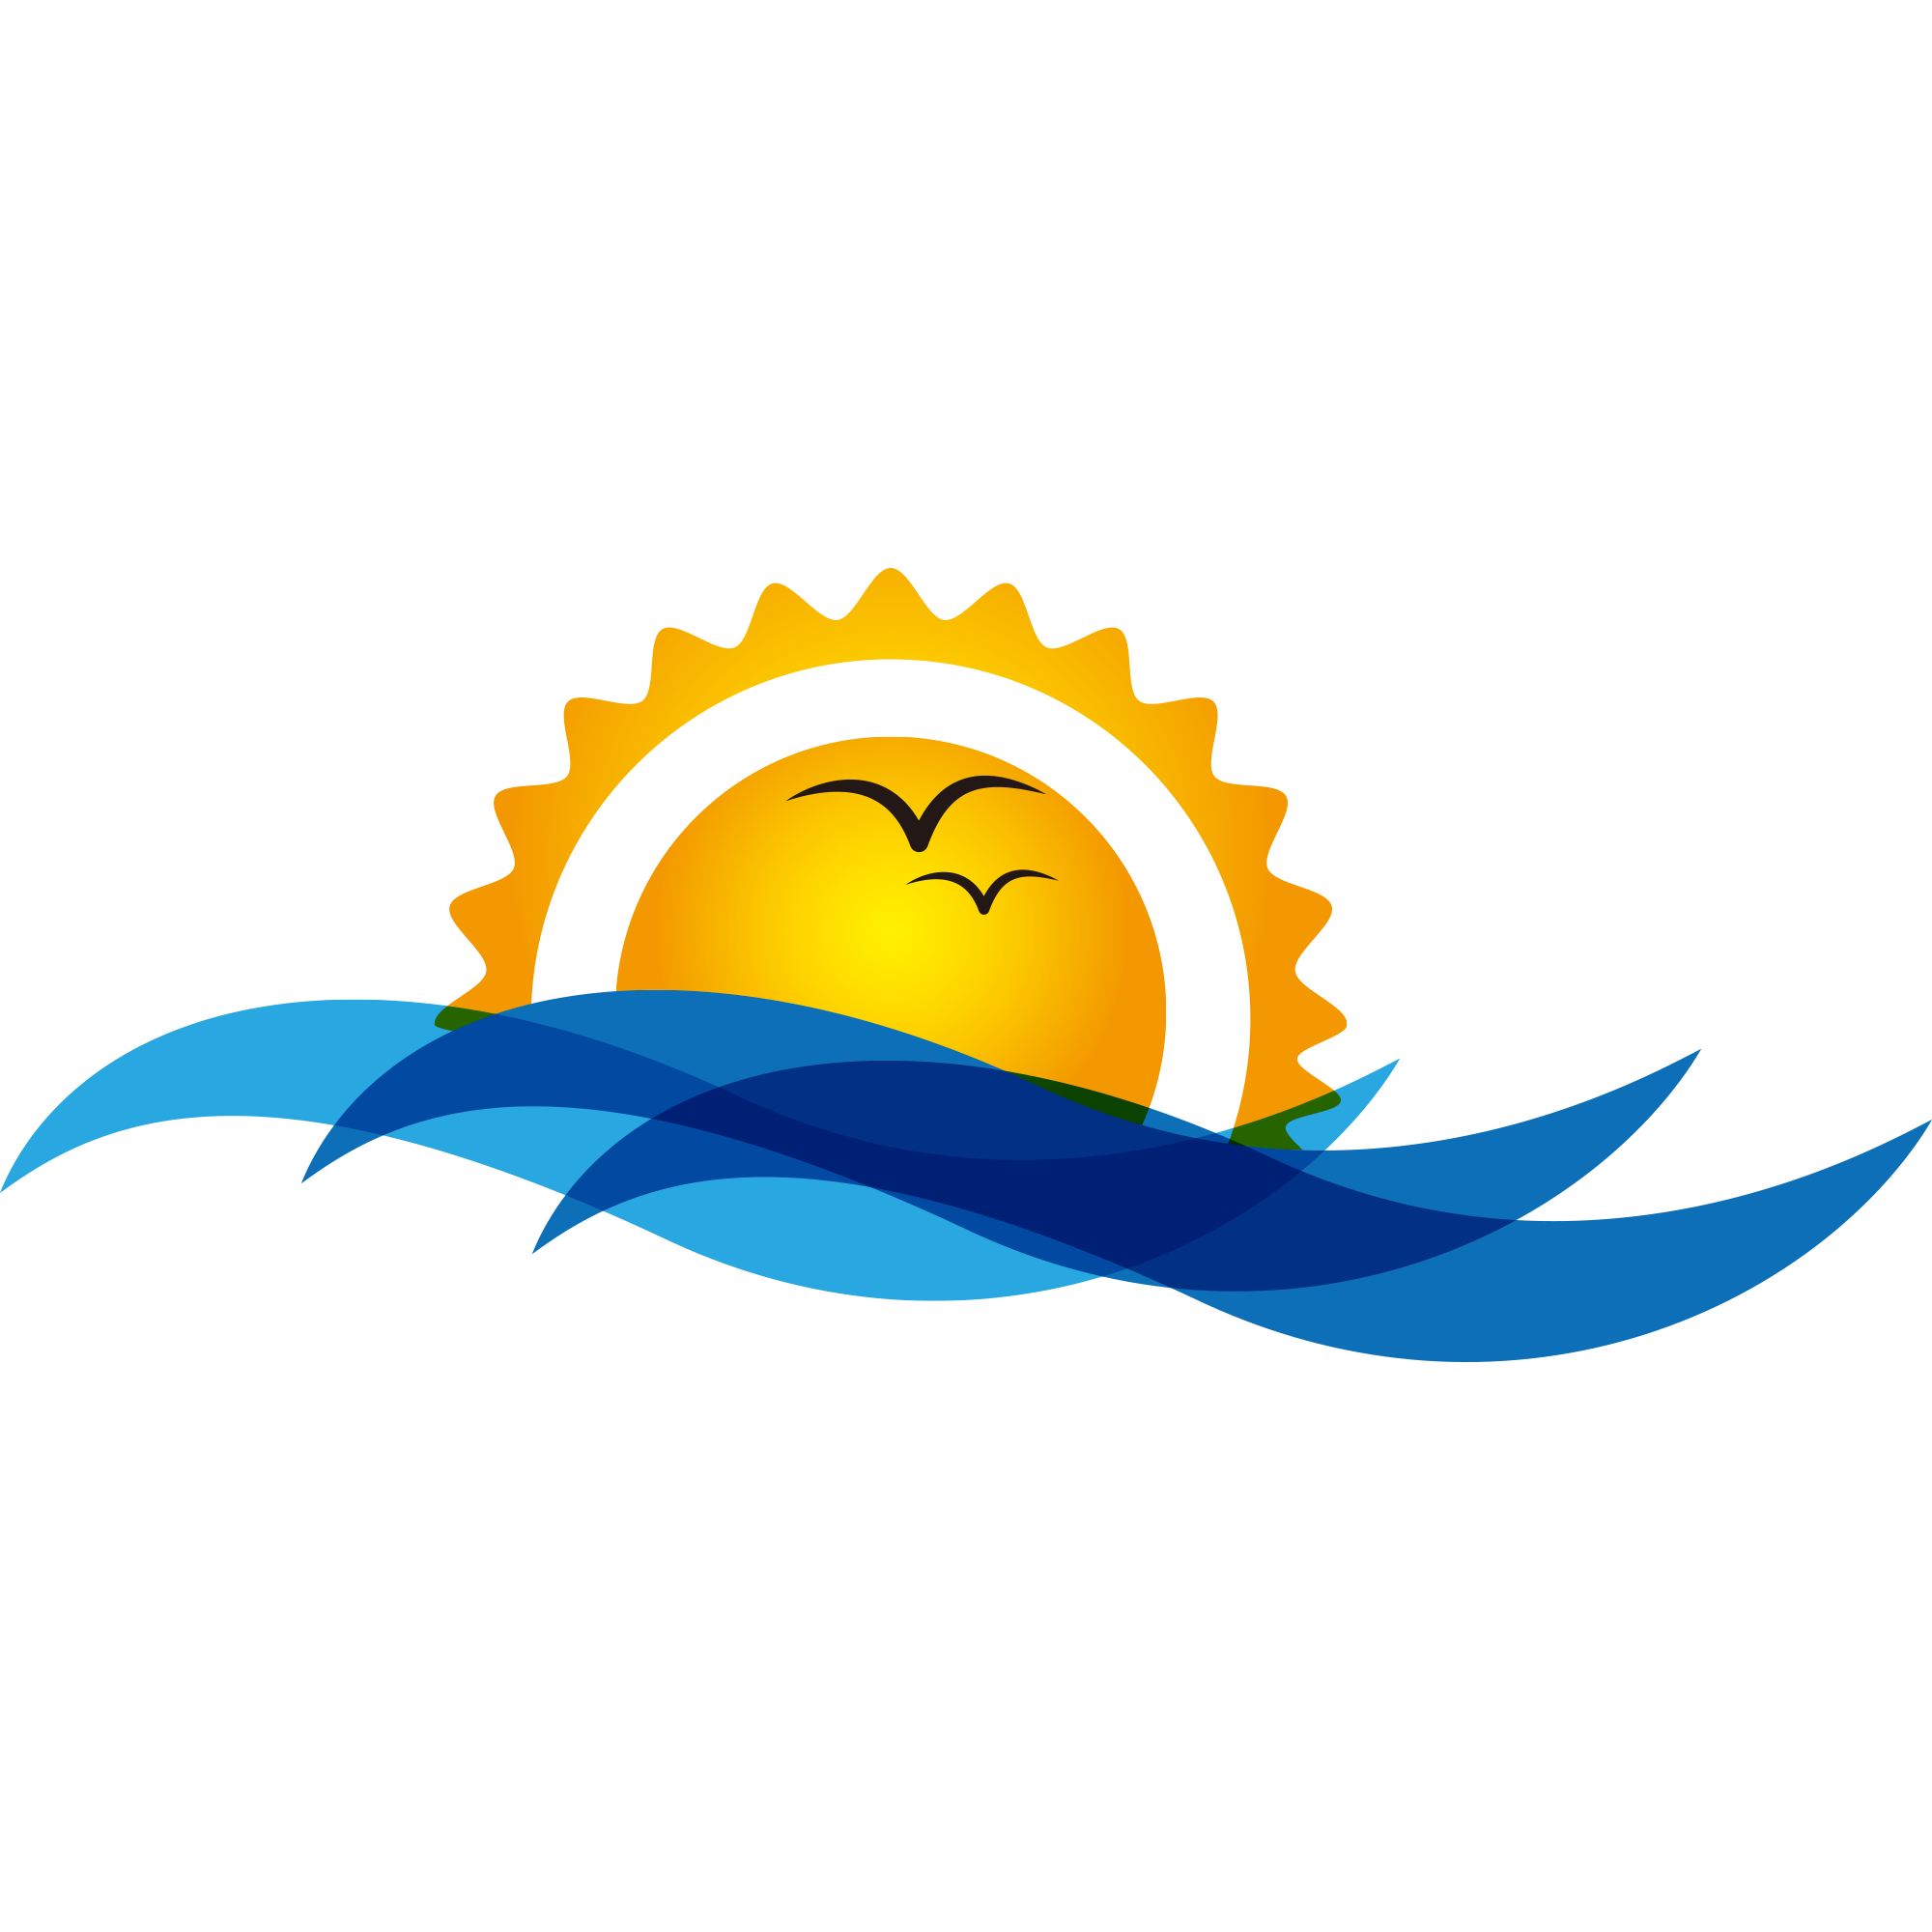 Sunset clipart sun rice. Bird sunrise wave clip